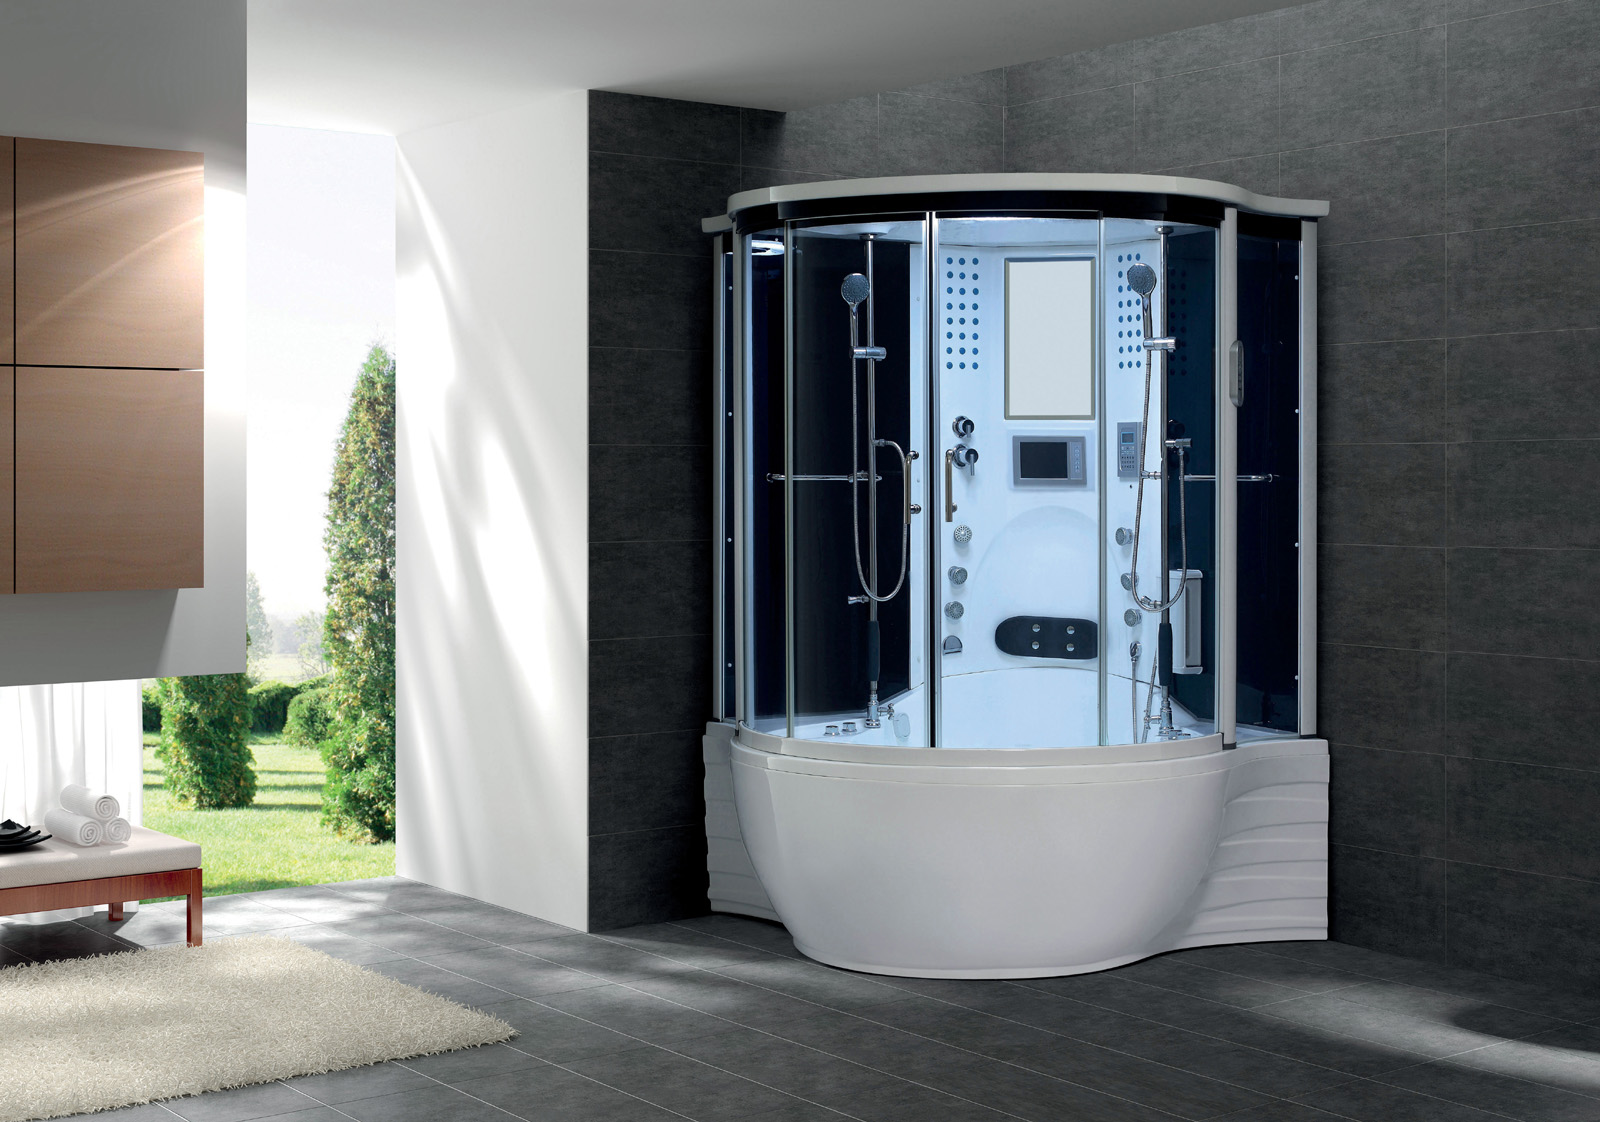 New 2013 model steam shower whirlpool jacuzzi hot tub spa for Salle de bain avec jacuzzi et douche